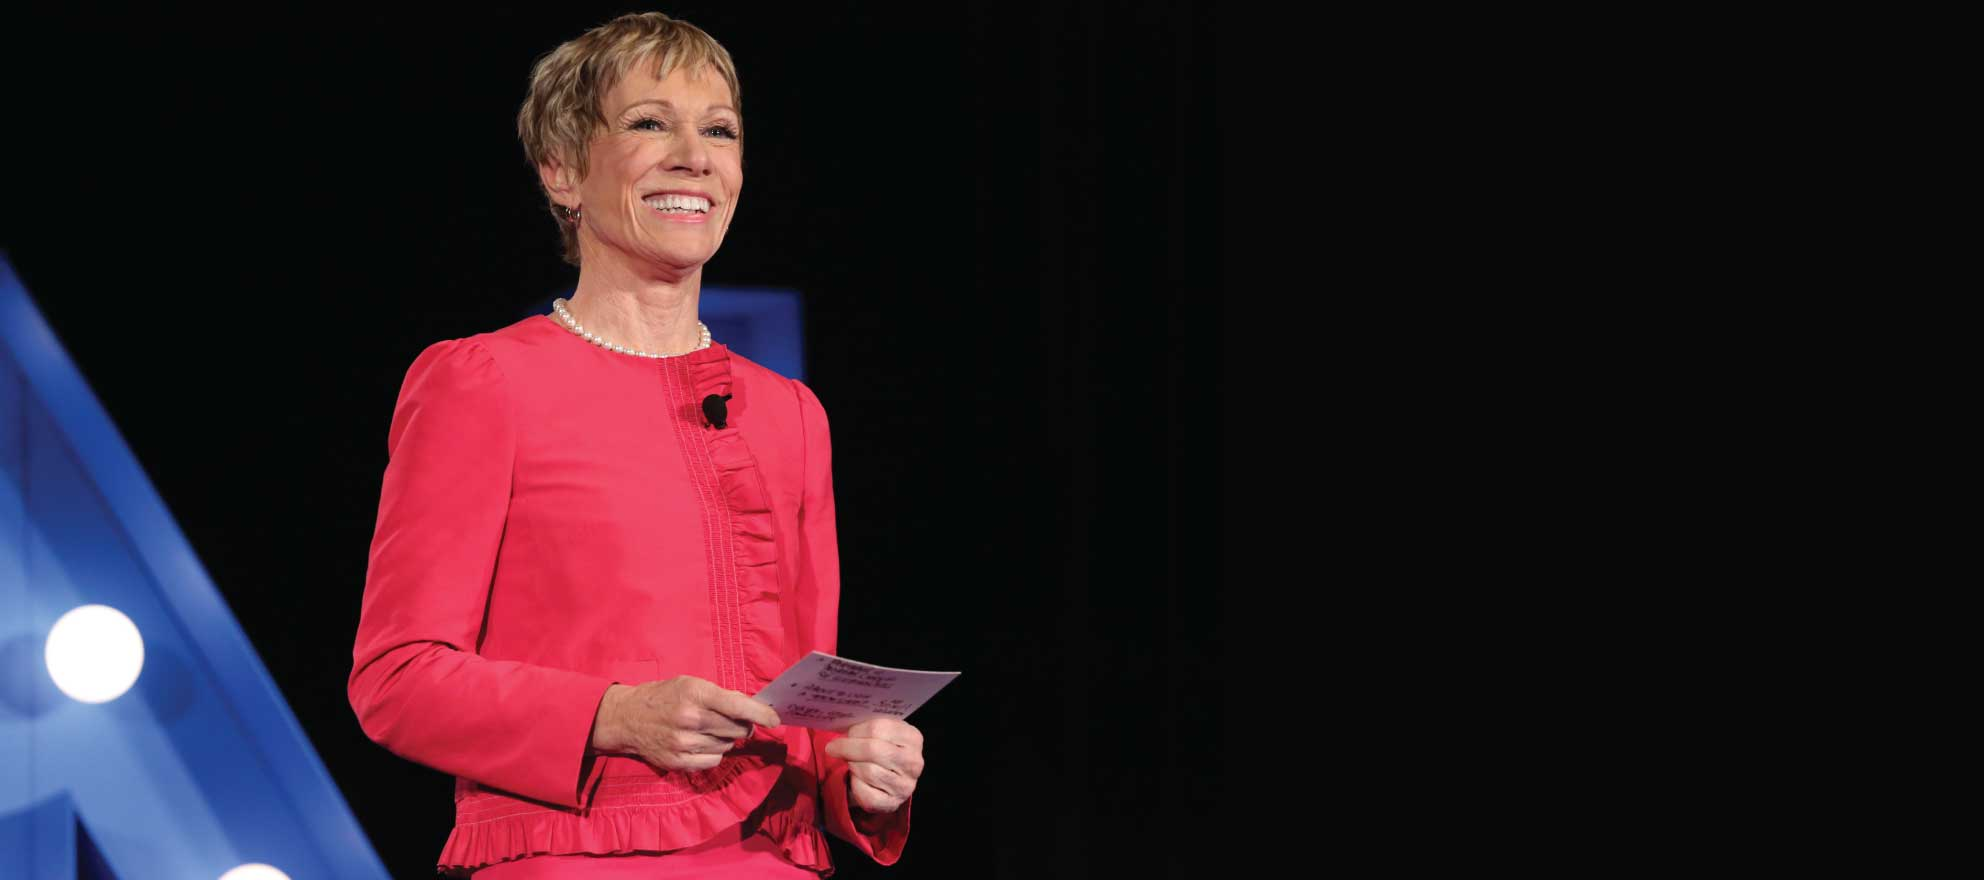 Barbara Corcoran at Inman Connect NYC 2015 / Photo by Elza Hayen